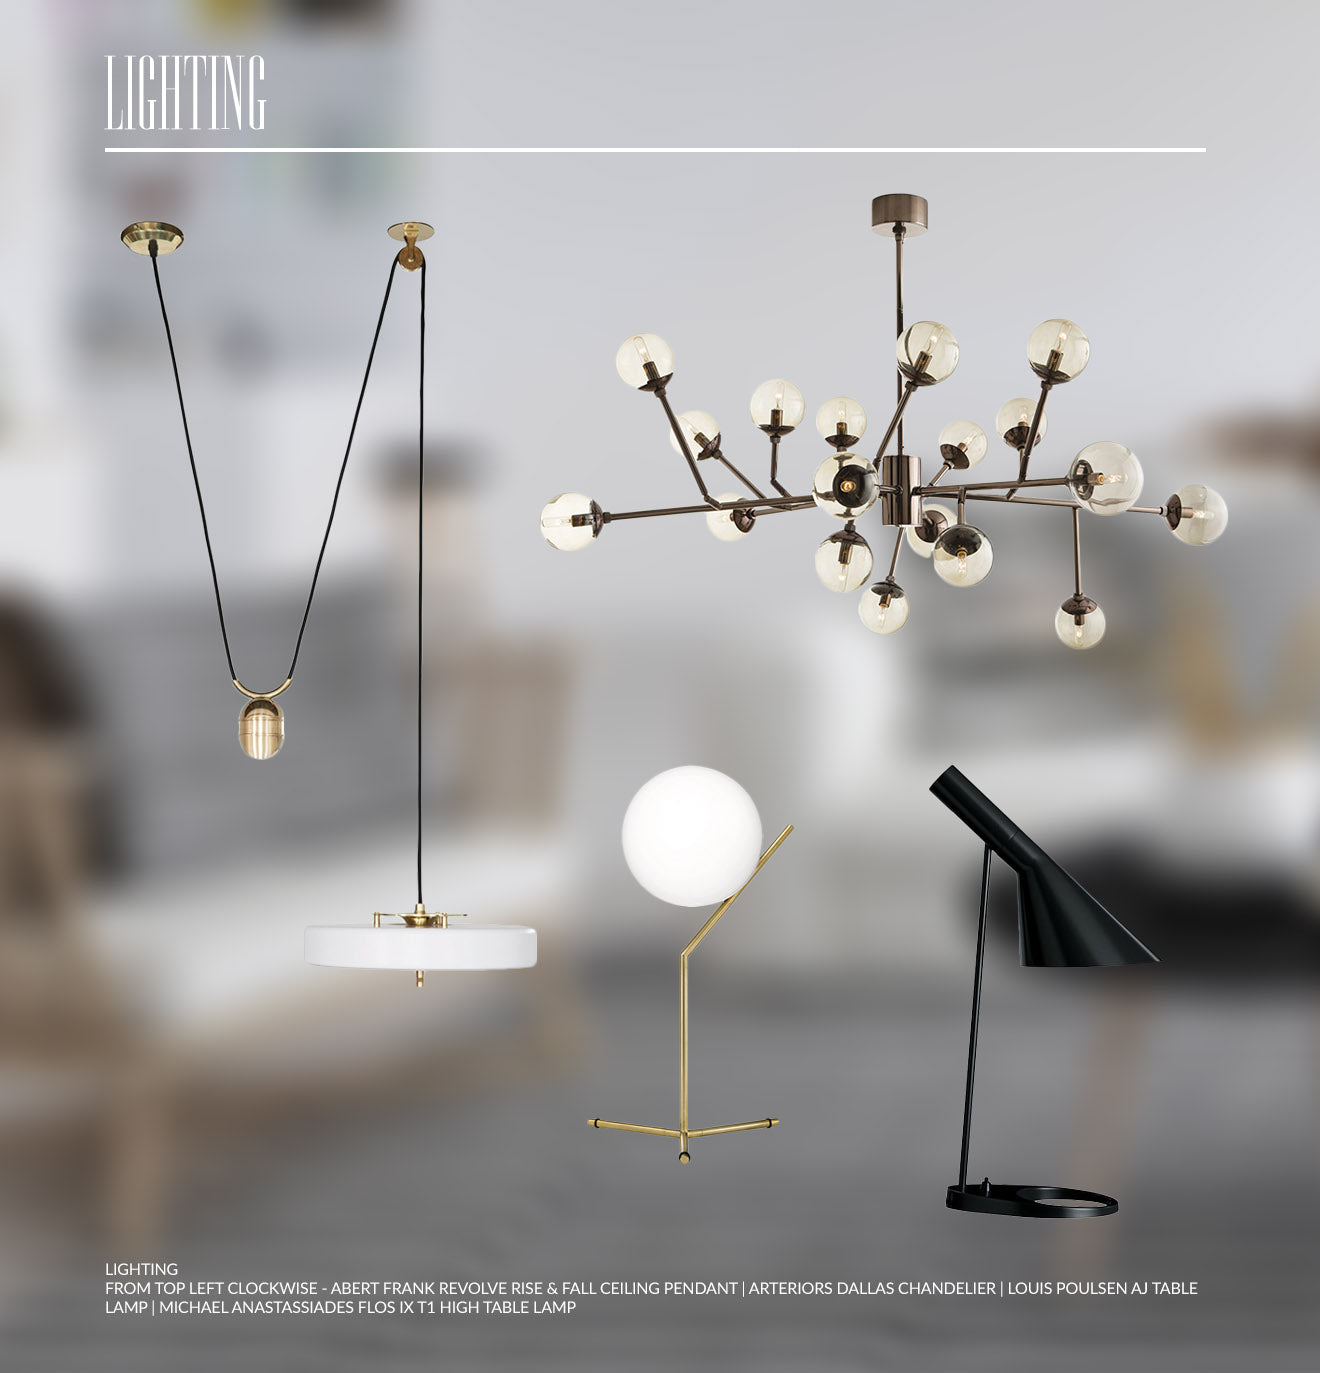 Scandinavian lighting designs and home decorating inspiration